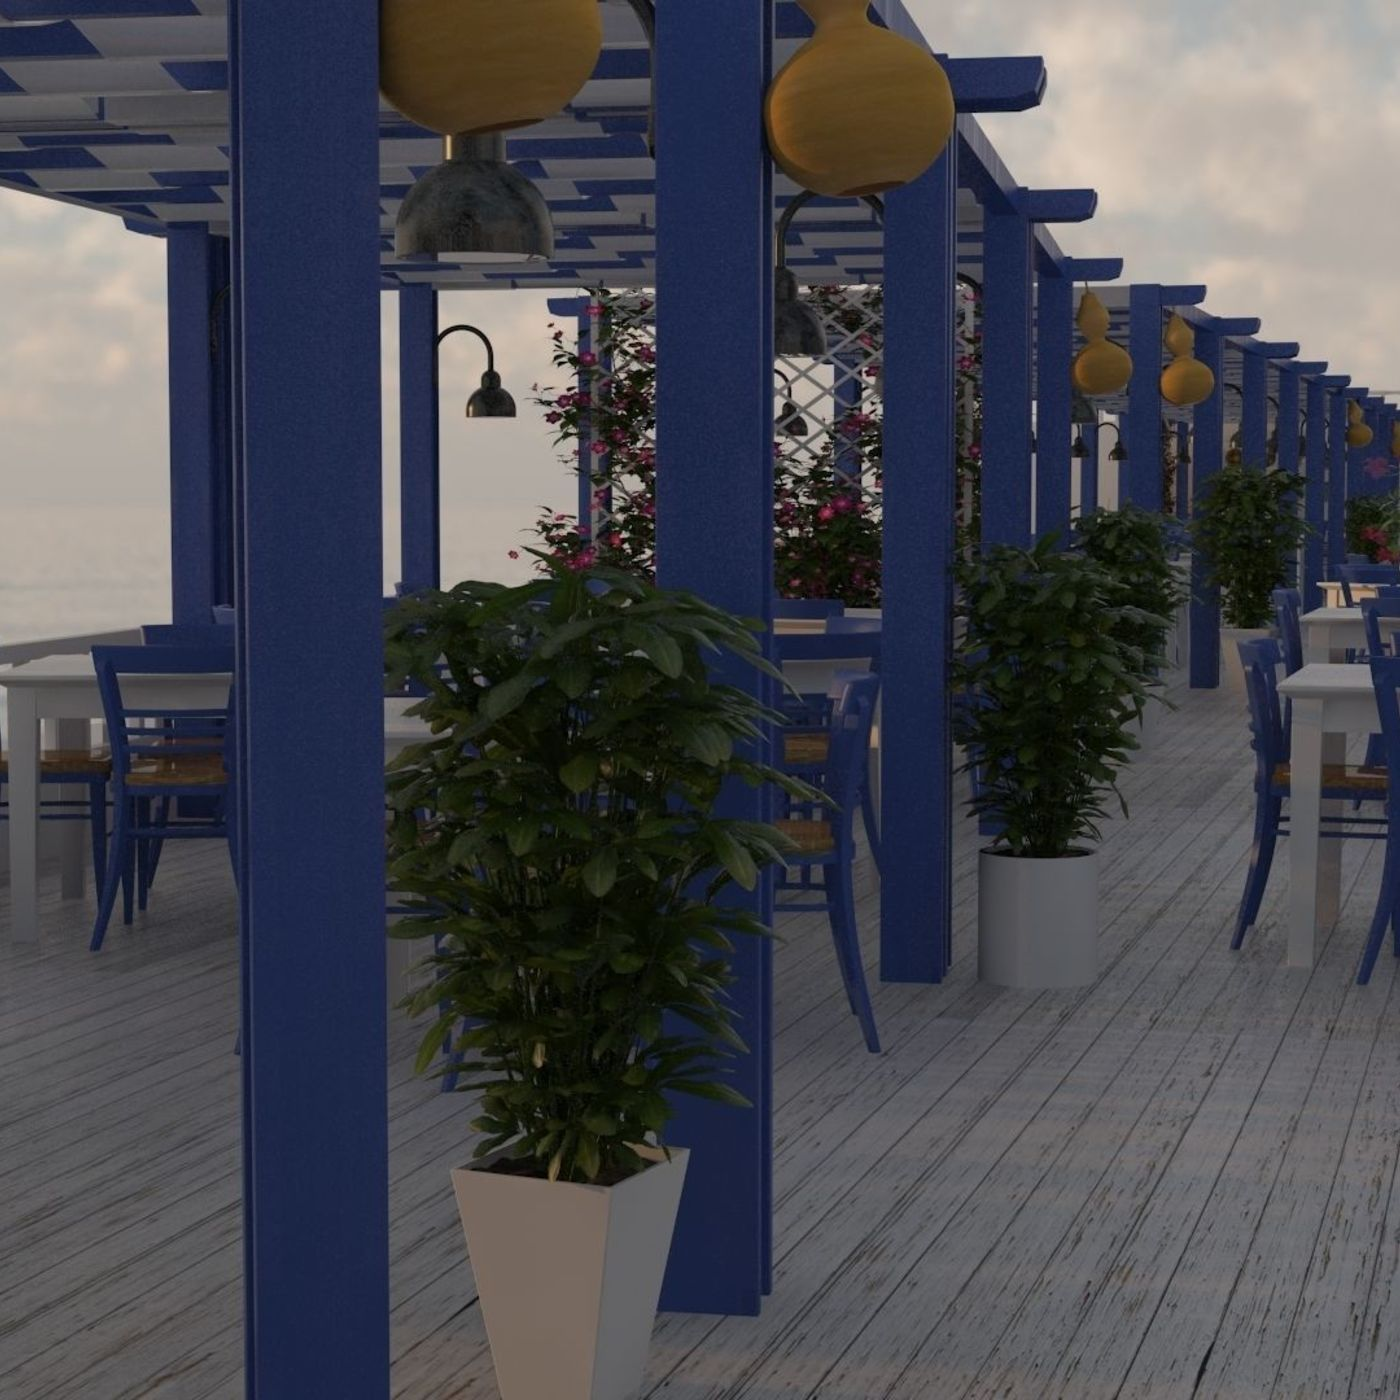 Aegean Taverna design and visualization project